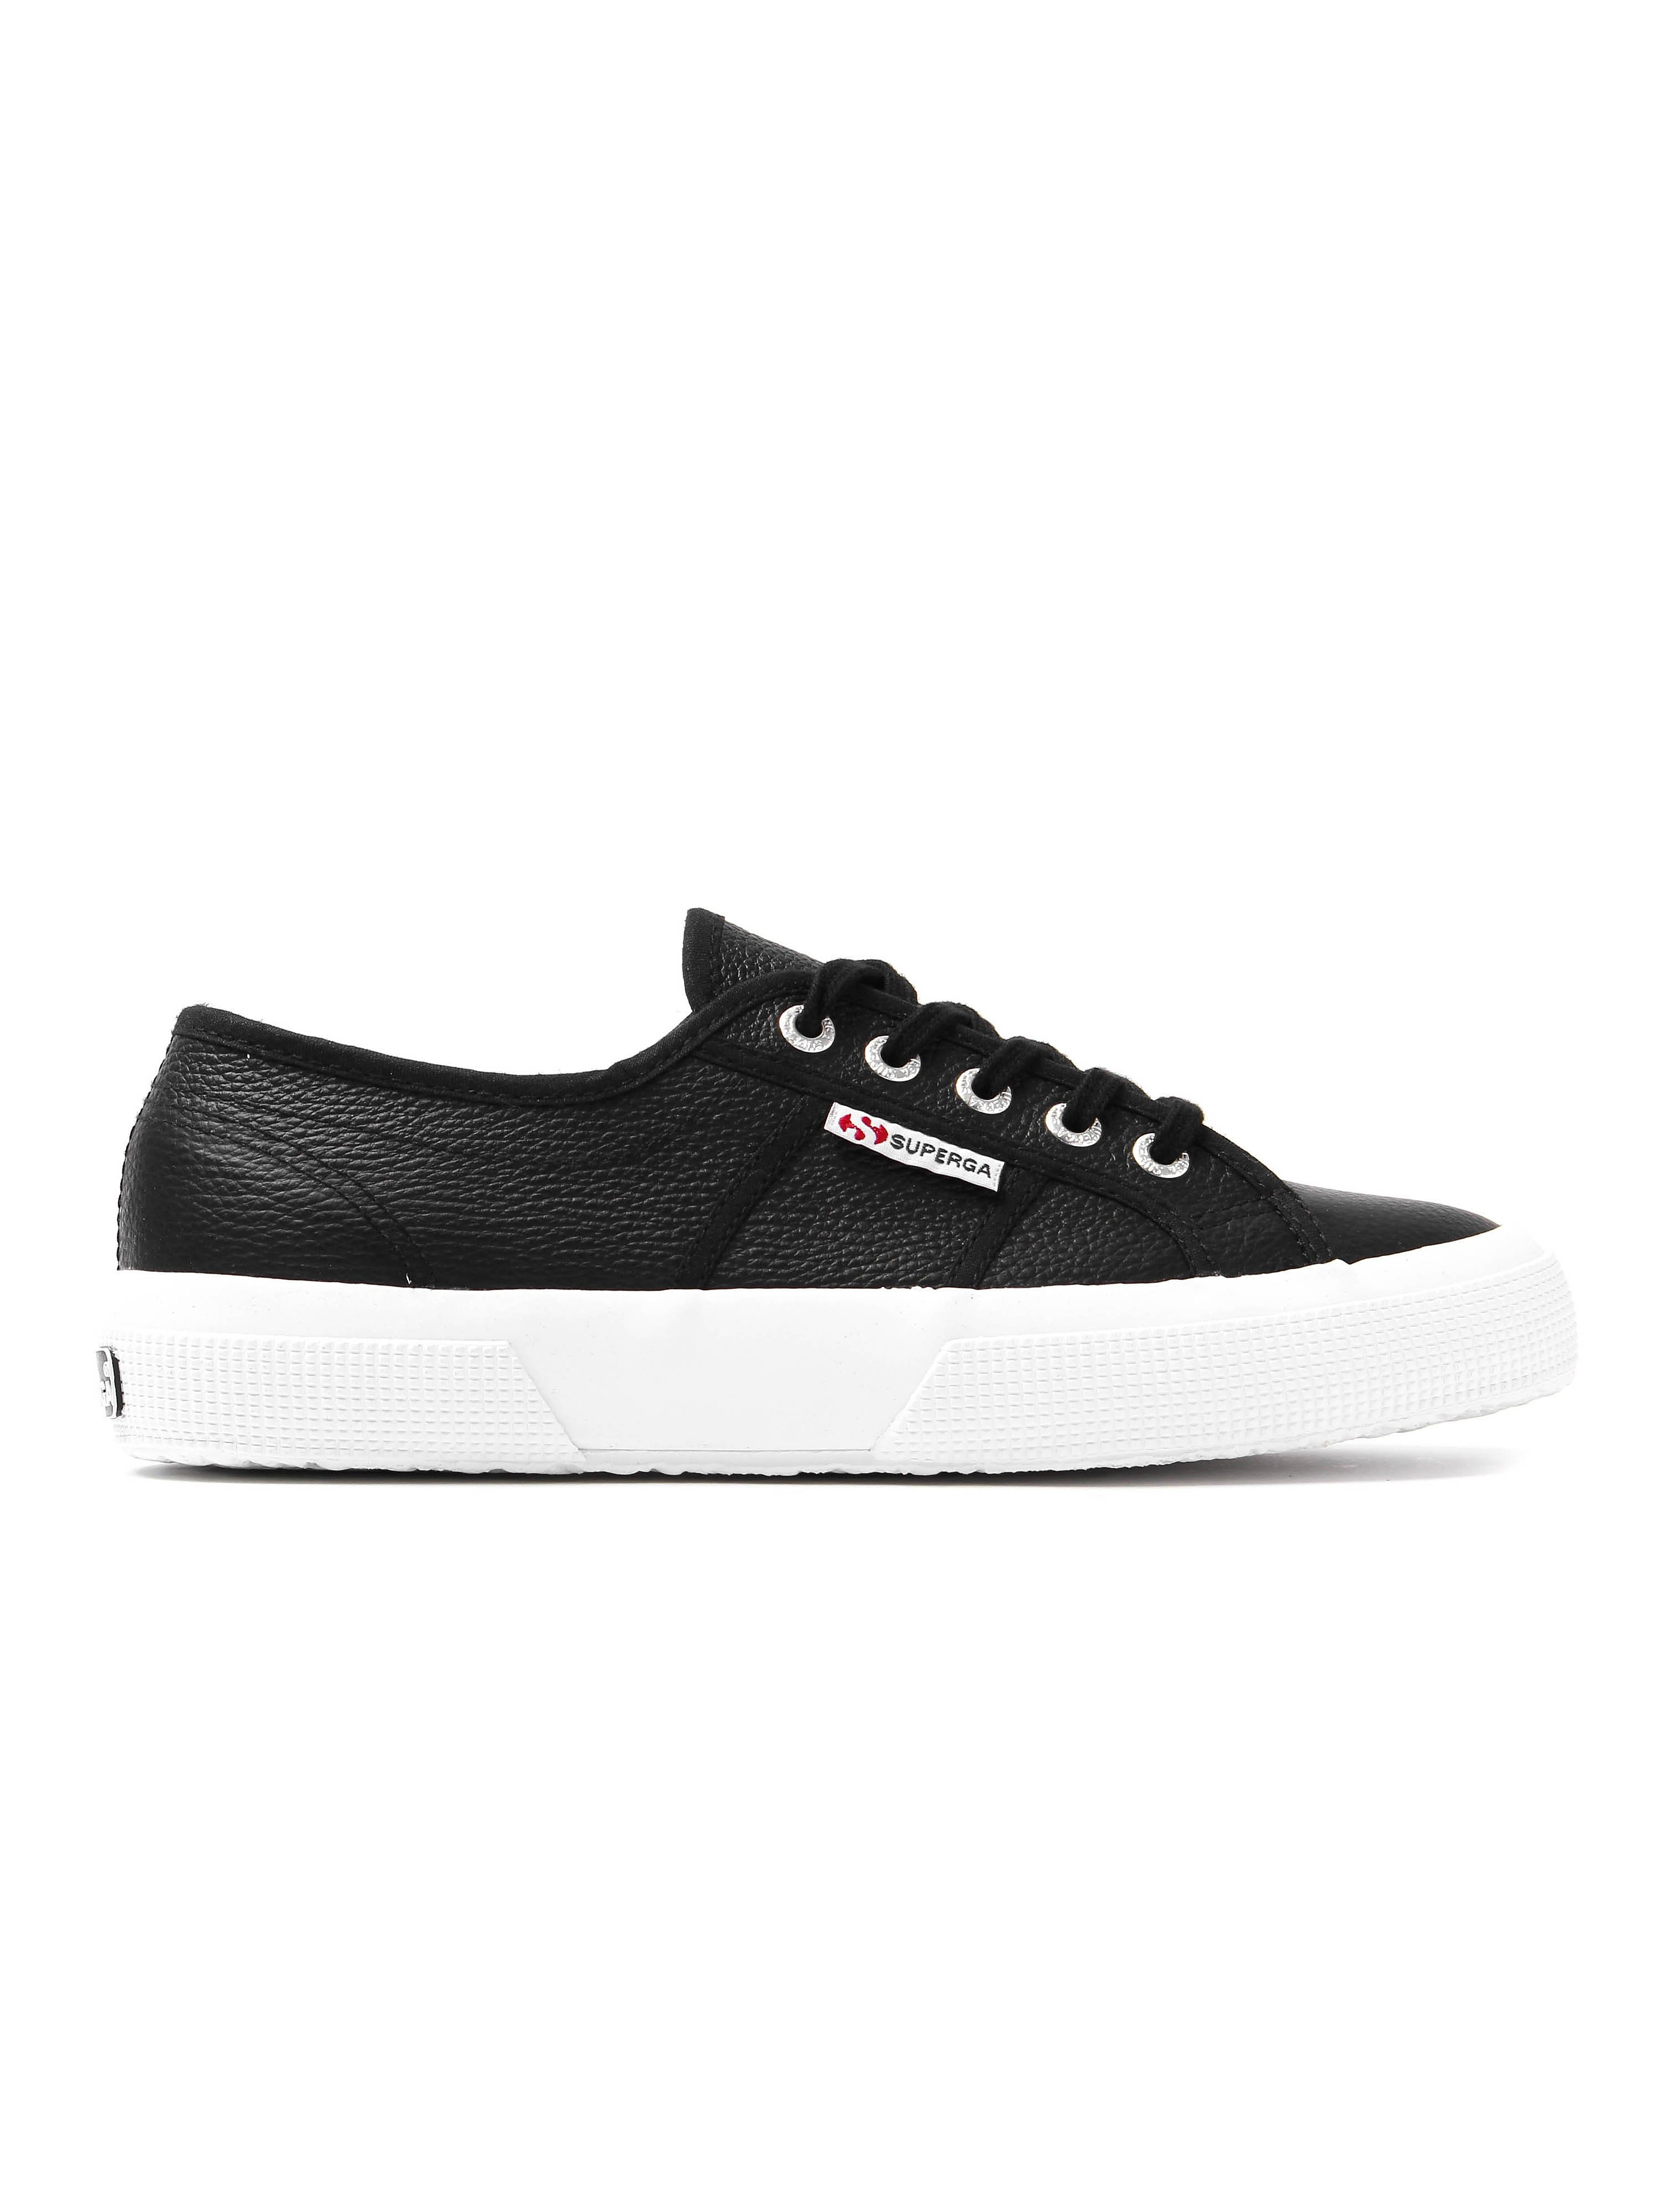 Superga Women's 2750 EFGLU Trainers - Black Grained Leather